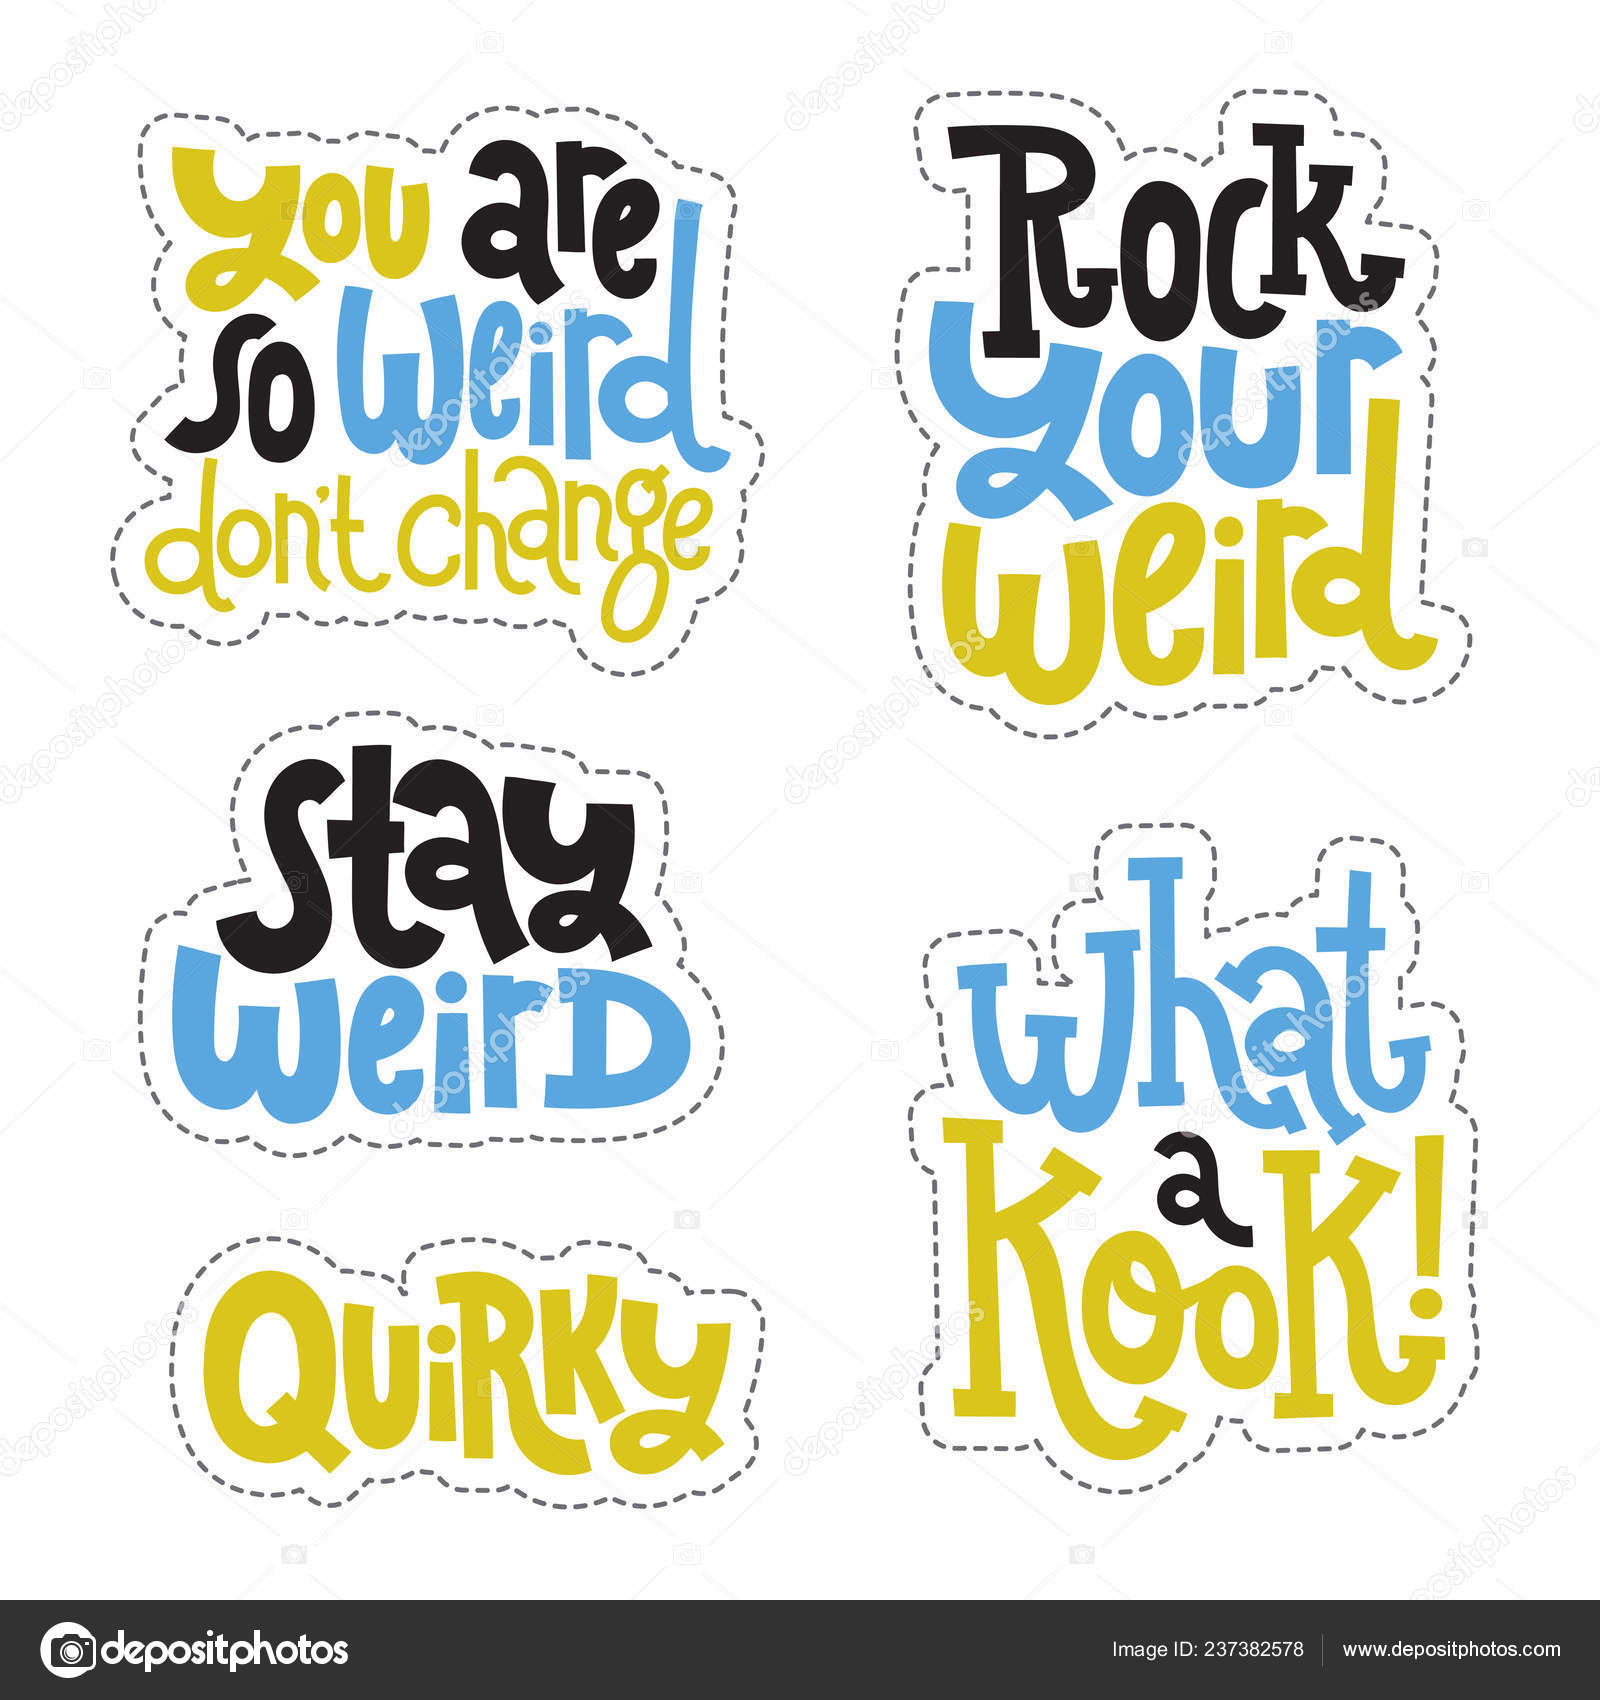 Weird and beautiful sticker set design template with hand drawn vector lettering stock